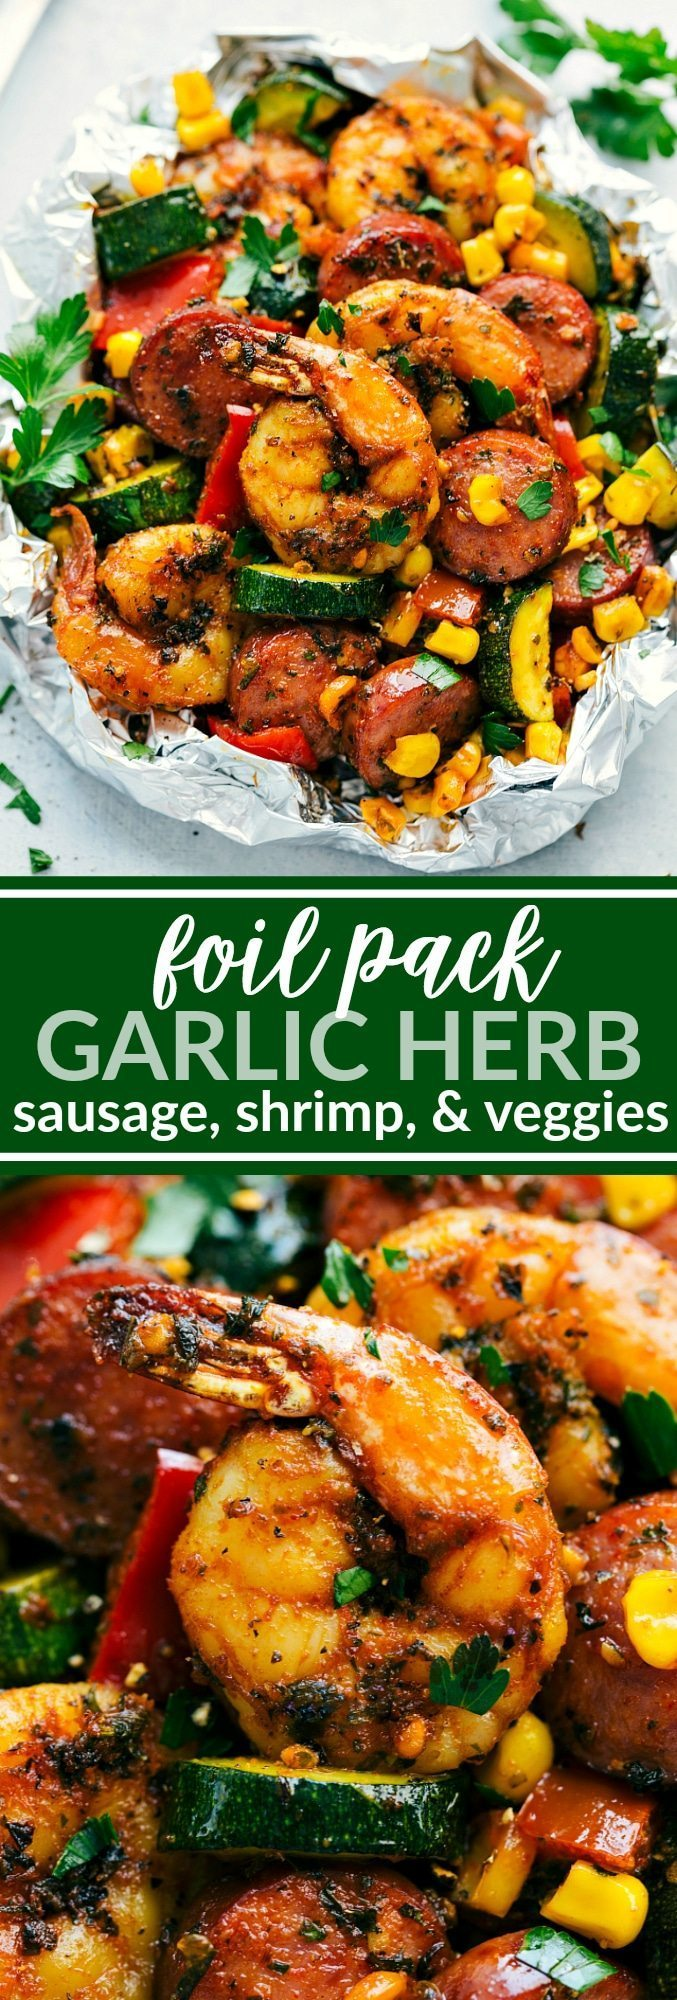 Delicious FOIL PACK garlic butter and herb sausage, shrimp, and veggies! Delicious and so easy to make! via chelseasmessyapron.com